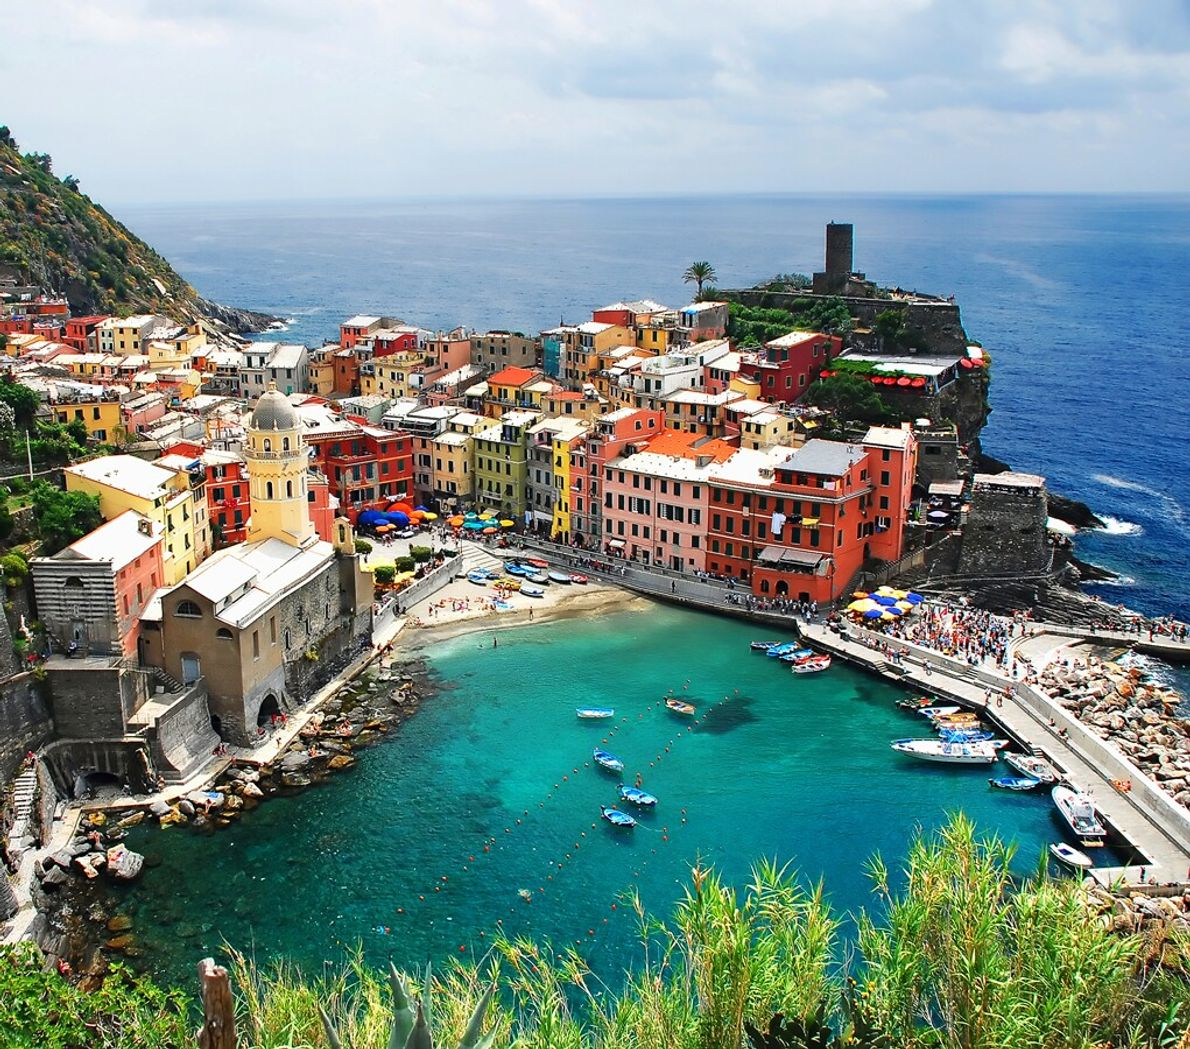 Vernazza is another of the Cinque Terra, protected by a sheltered bay and a robust harbour ...